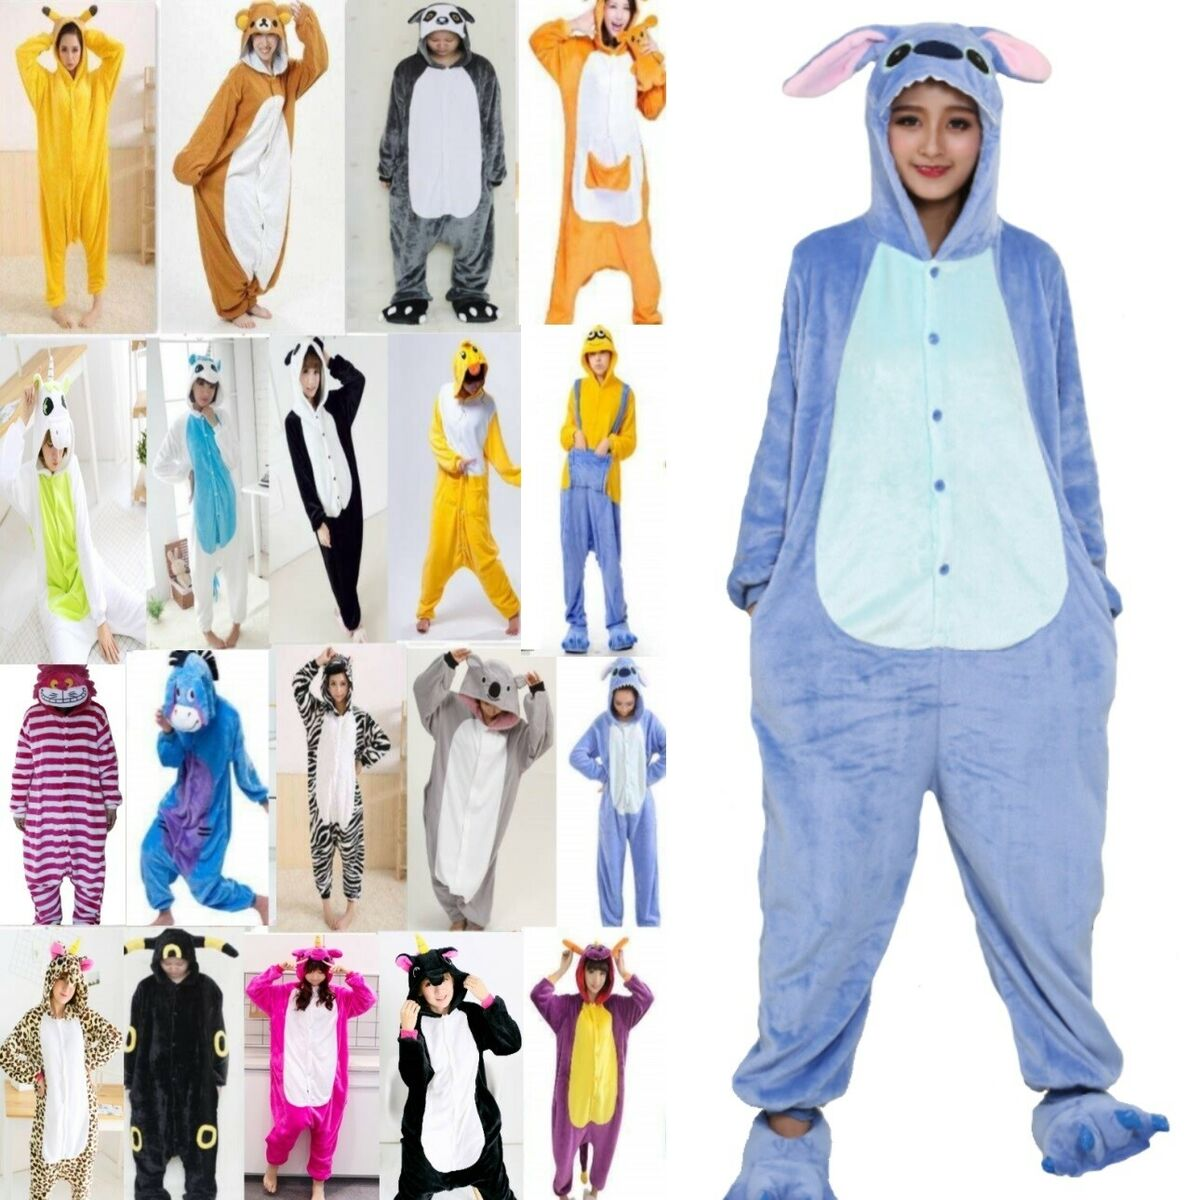 Pigiama animale intero kigurumi costume carnevale halloween cosplay materiale 